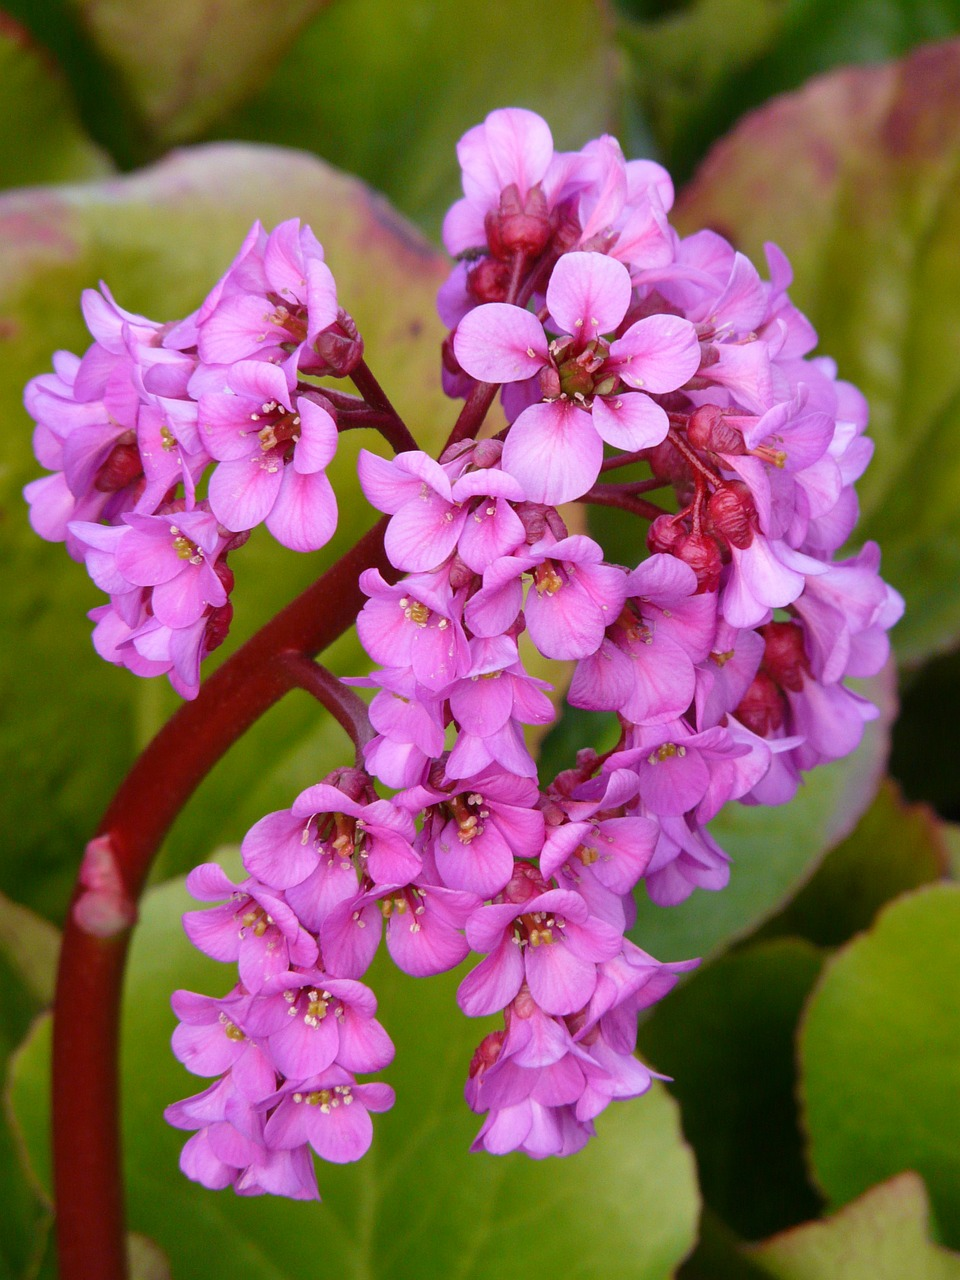 bergenia,settled wurz,rock crushing plant,herb,pink,purple,color,colorful,flower,blossom,bloom,fauna,ornamental shrub,rock plants,free pictures, free photos, free images, royalty free, free illustrations, public domain